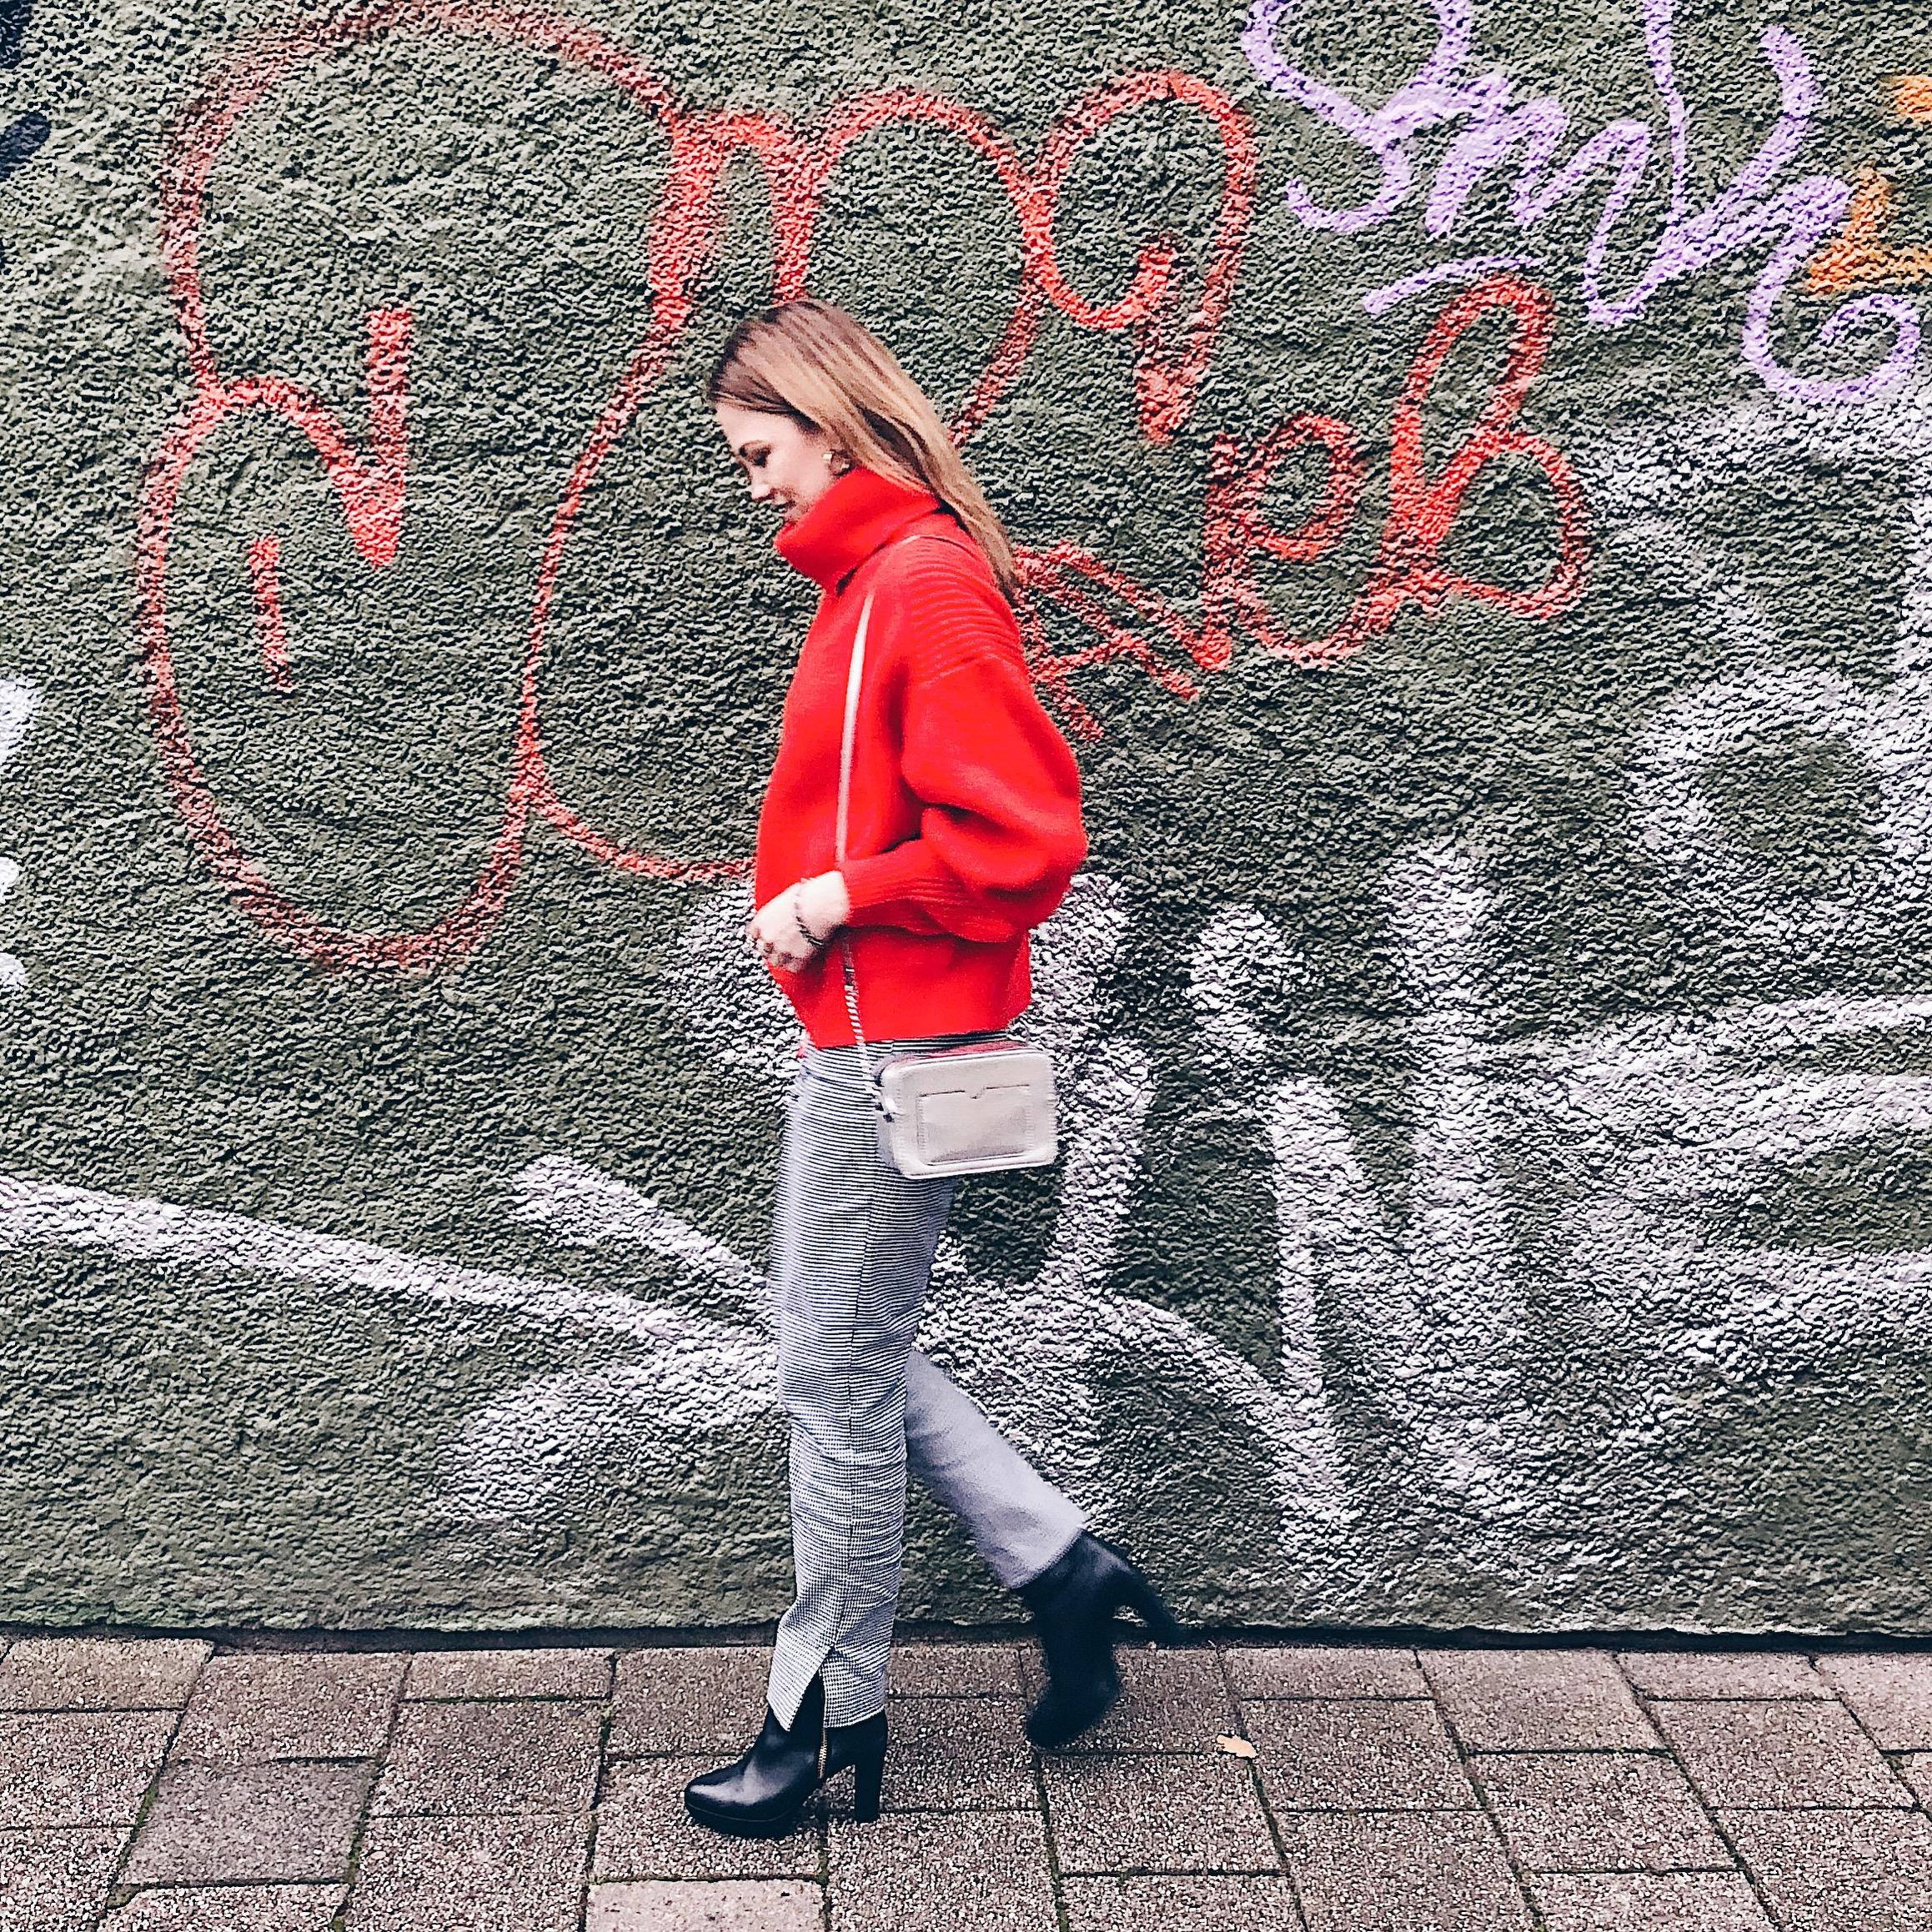 Graffiti Style📸 #streetstyle #sweater #red #ootd #vondirinspiriert #fashion